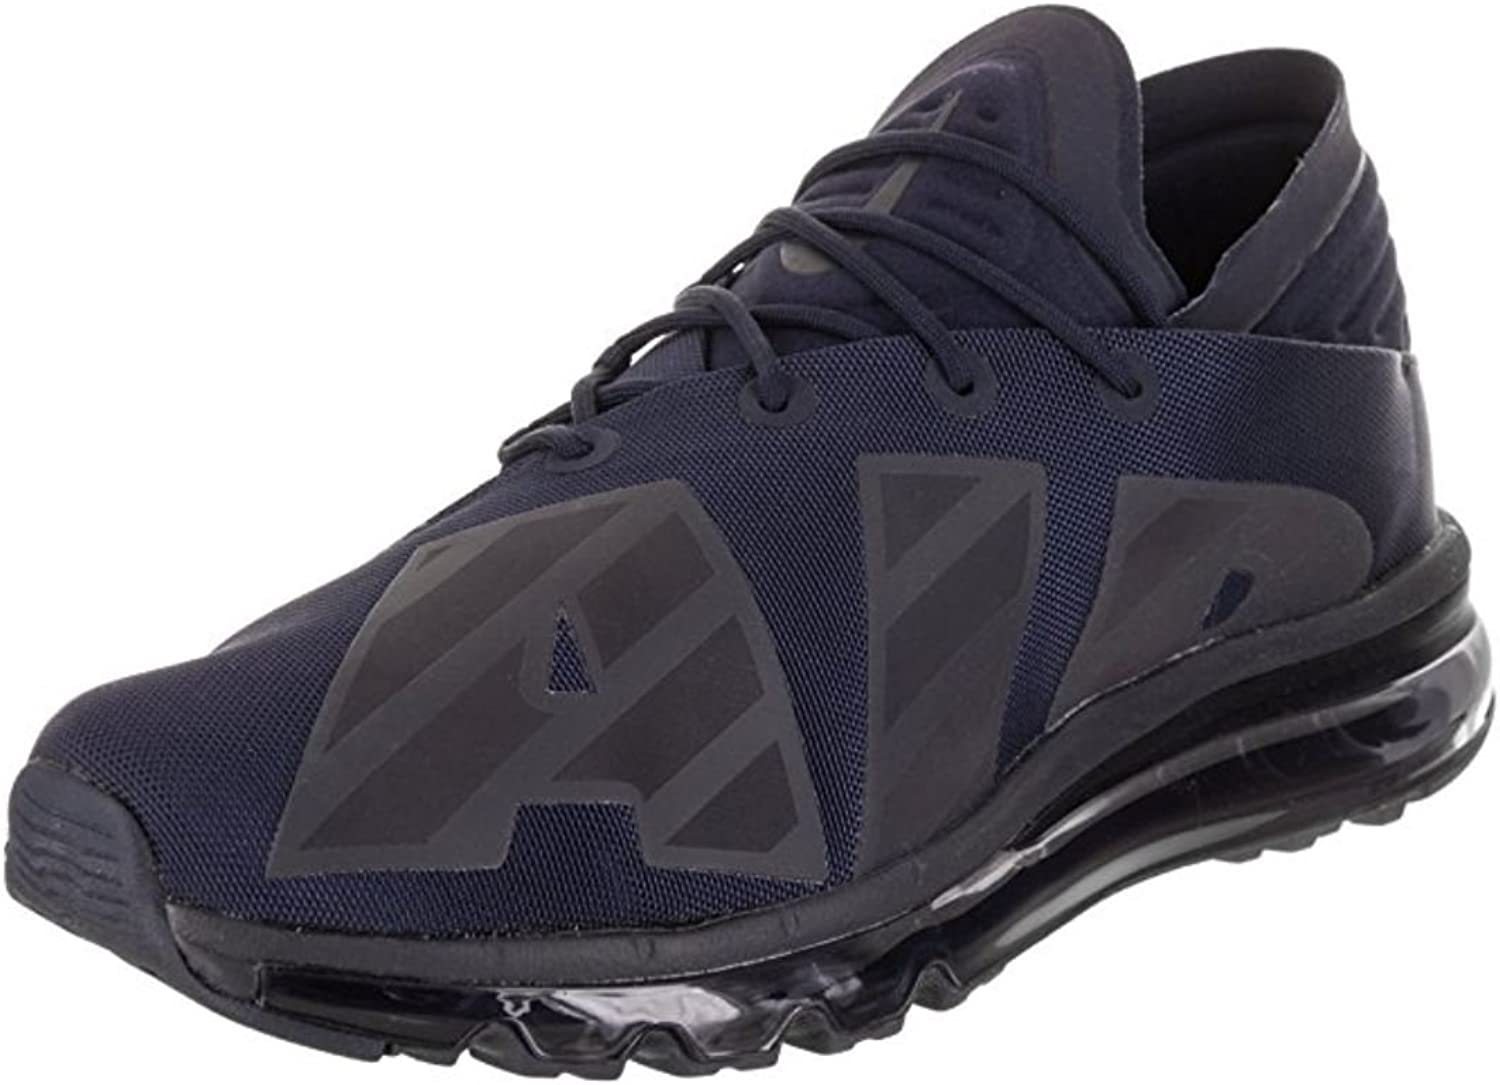 Nike Men's Air Max Flair SE Obsidian Obsidian Obsidian Casual shoes (11.5)